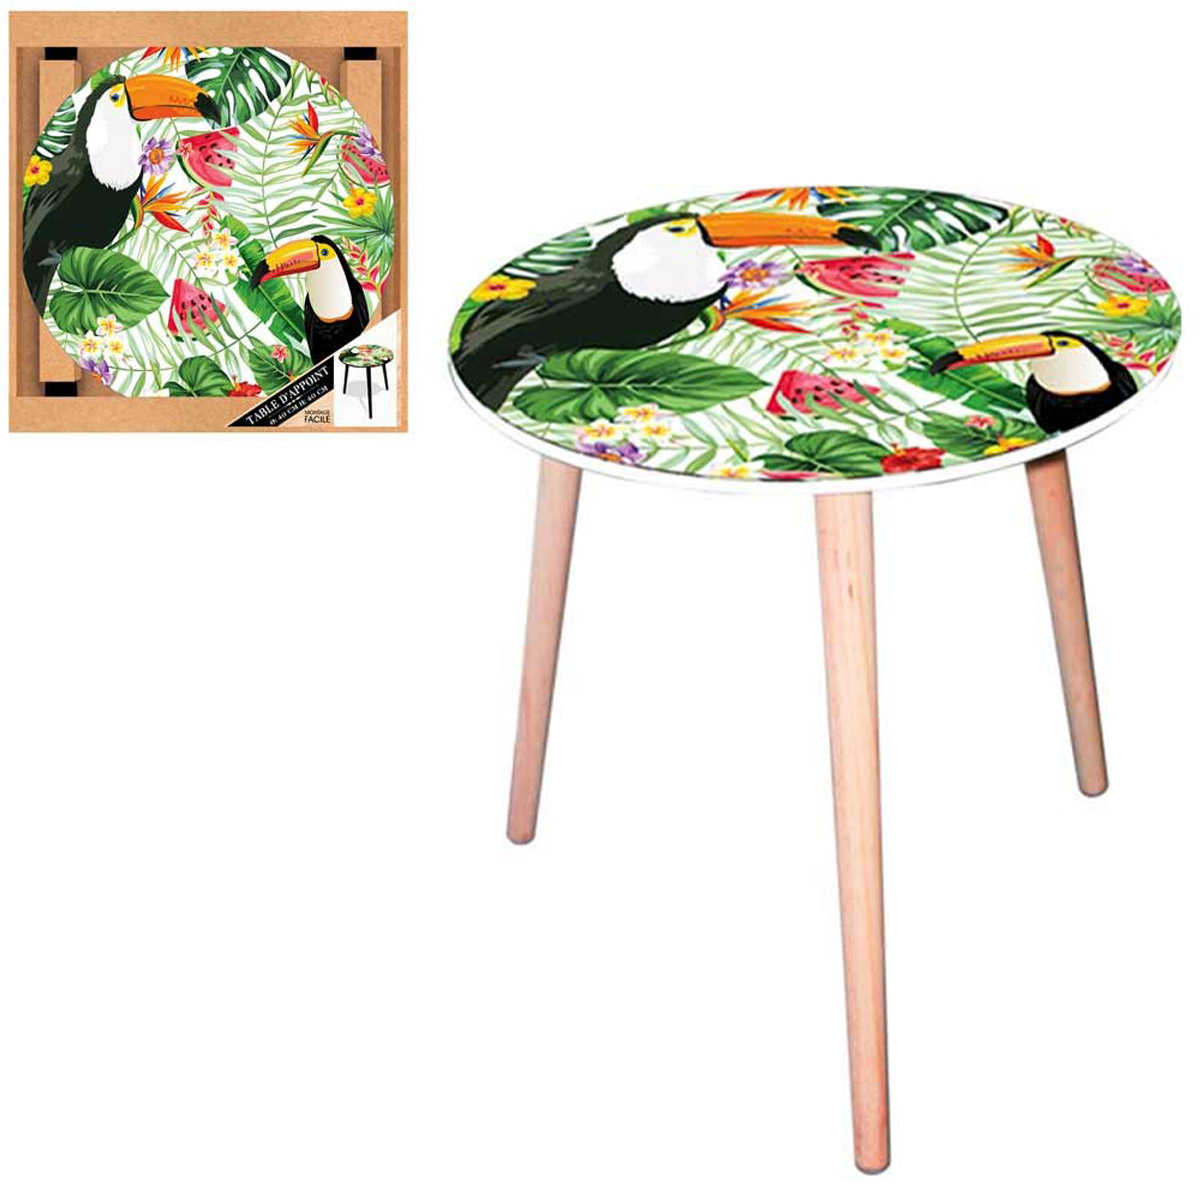 Table ronde résine \'Tropical\' vert multicolore (toucan) - 40 cm - [Q5149]